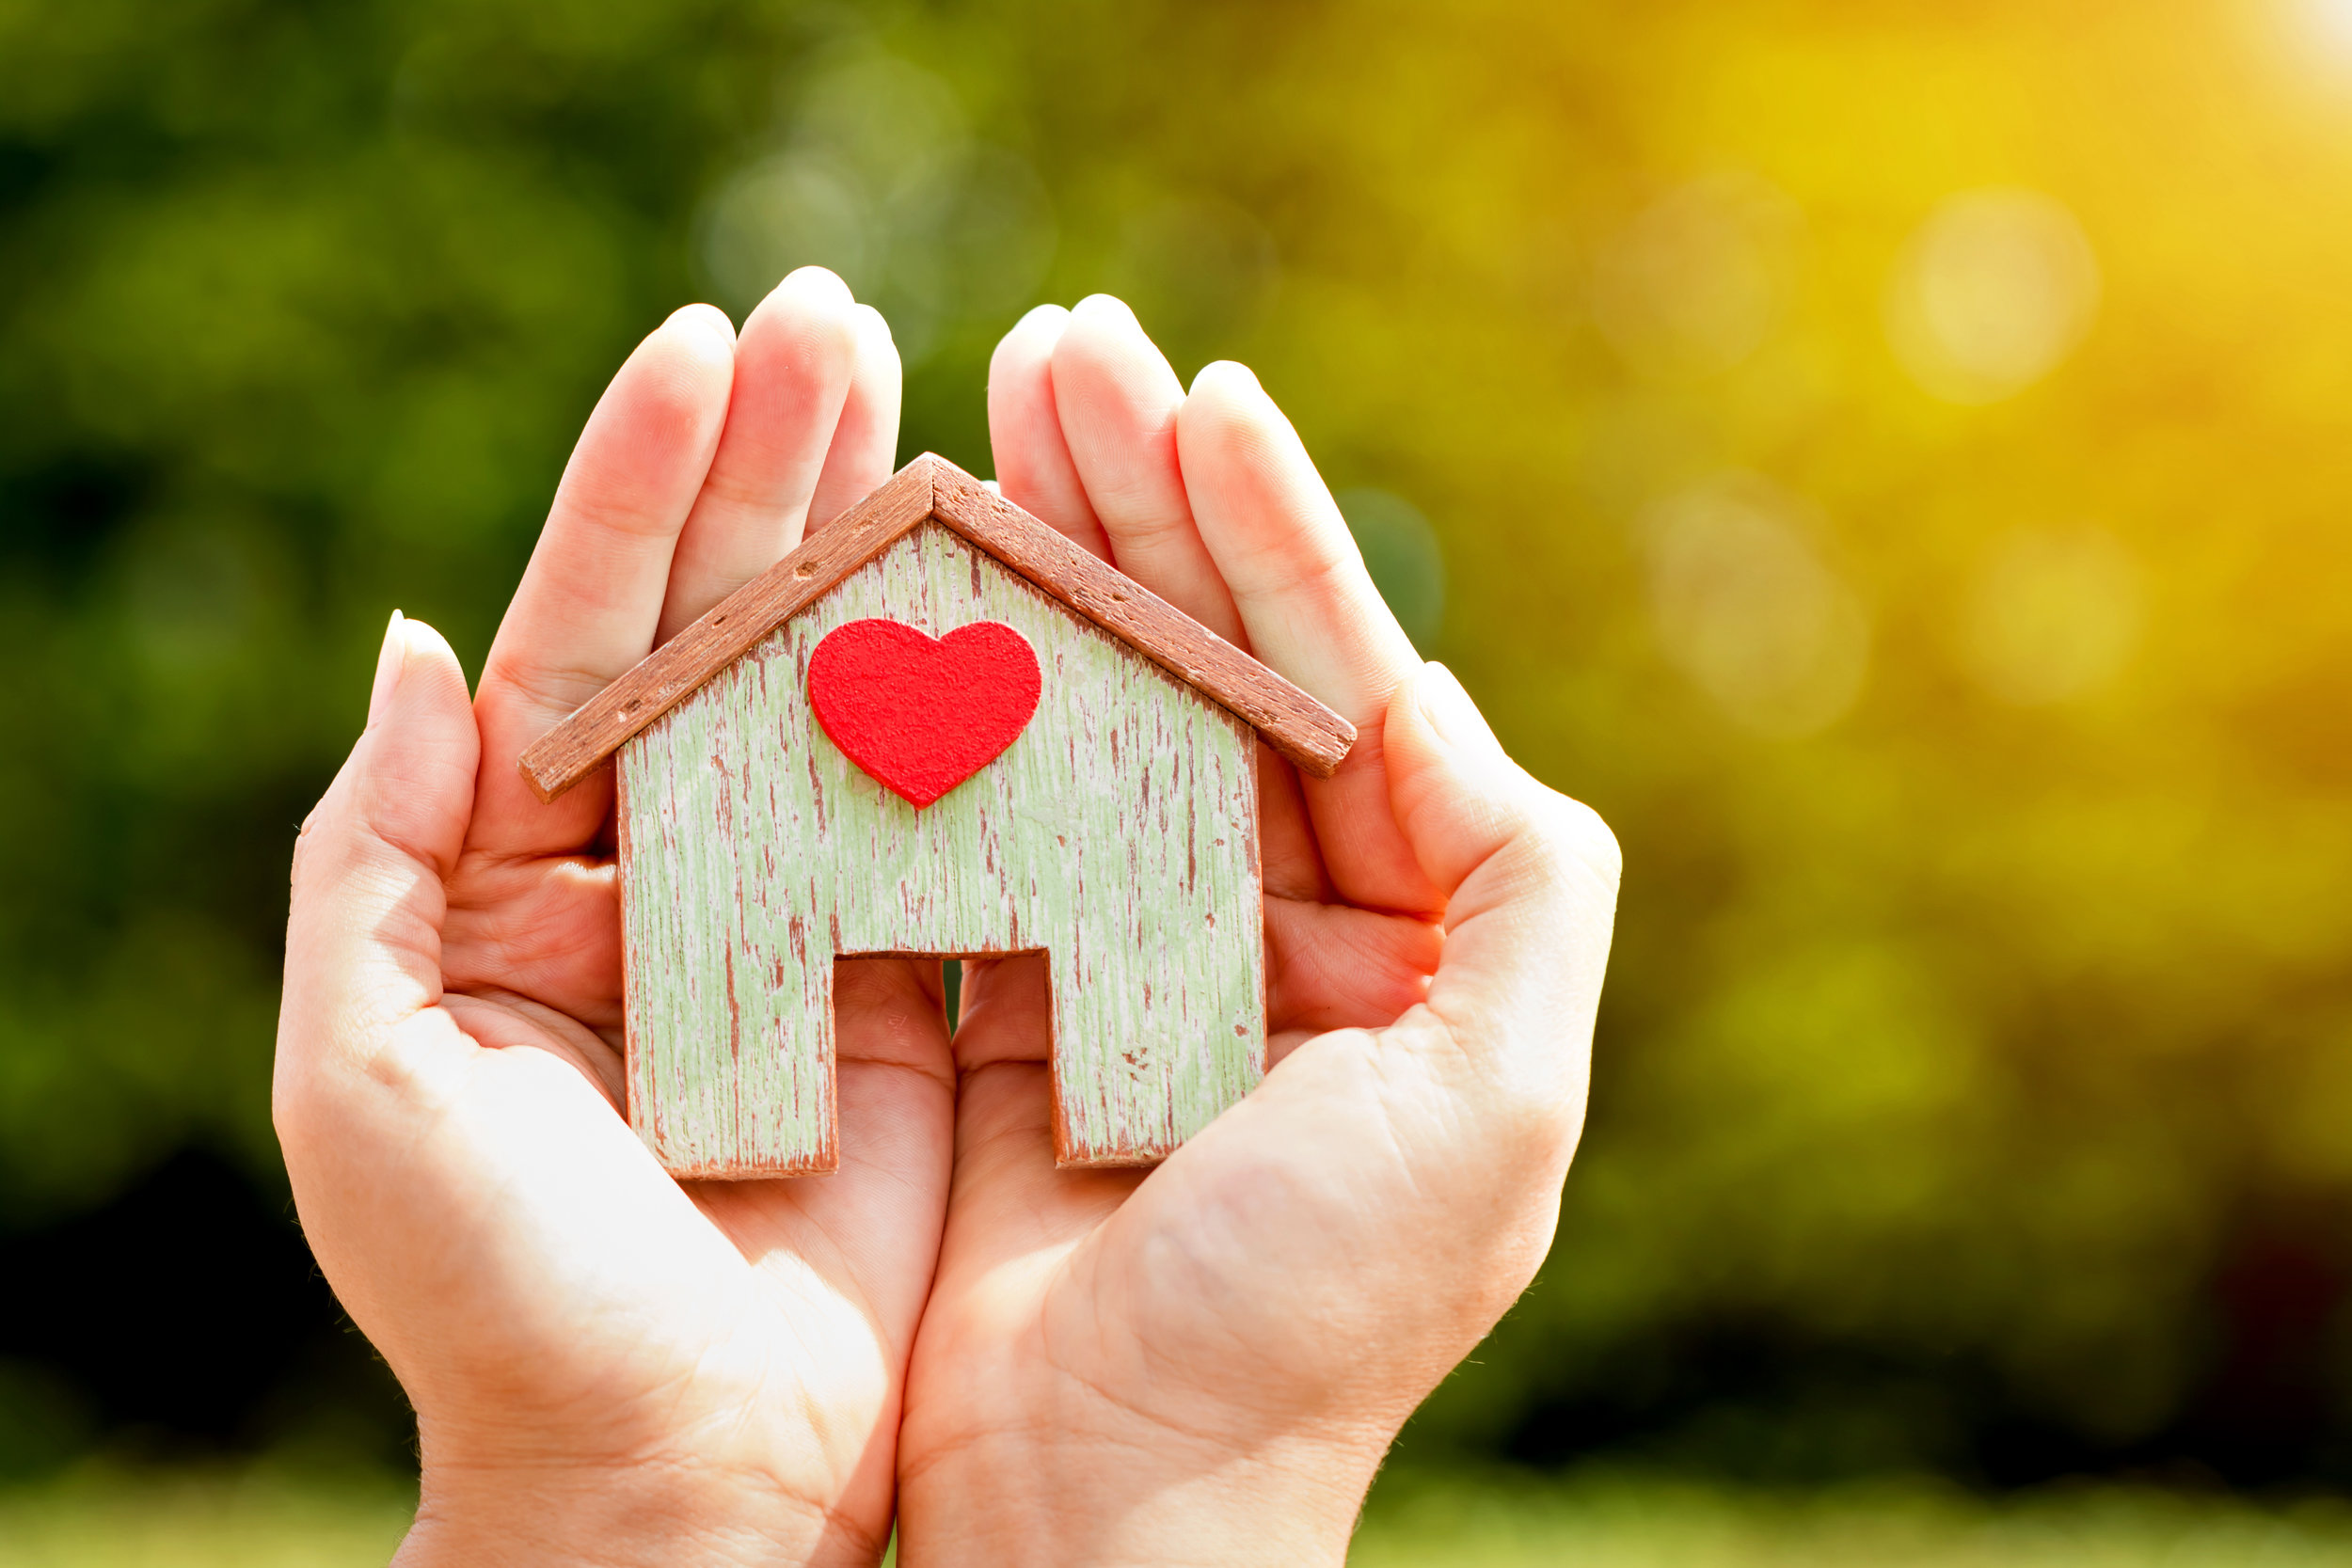 PROTECTION - For your home and family.Life Assurance, Critical Illness Cover, Income Protection, Family Cover, Home insurance.